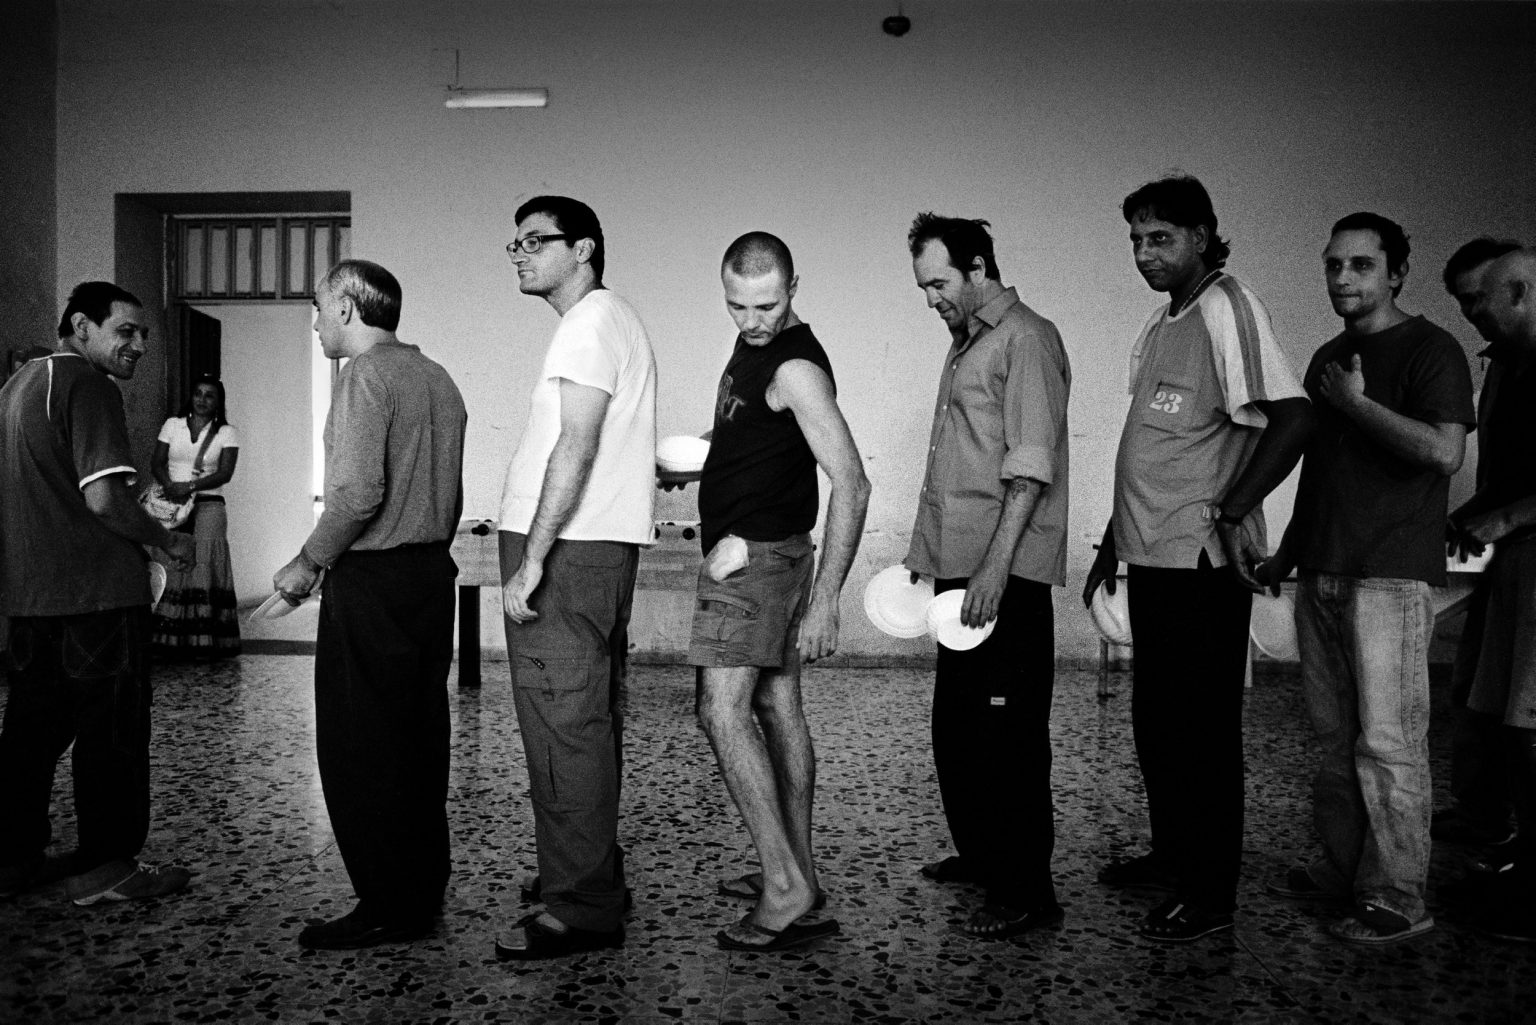 """Aversa ( Caserta ), January 2007 - The Judicial Psychiatric Hospital """"Filippo Saporito"""" - The 8th division: inmates queueing for lunch"""